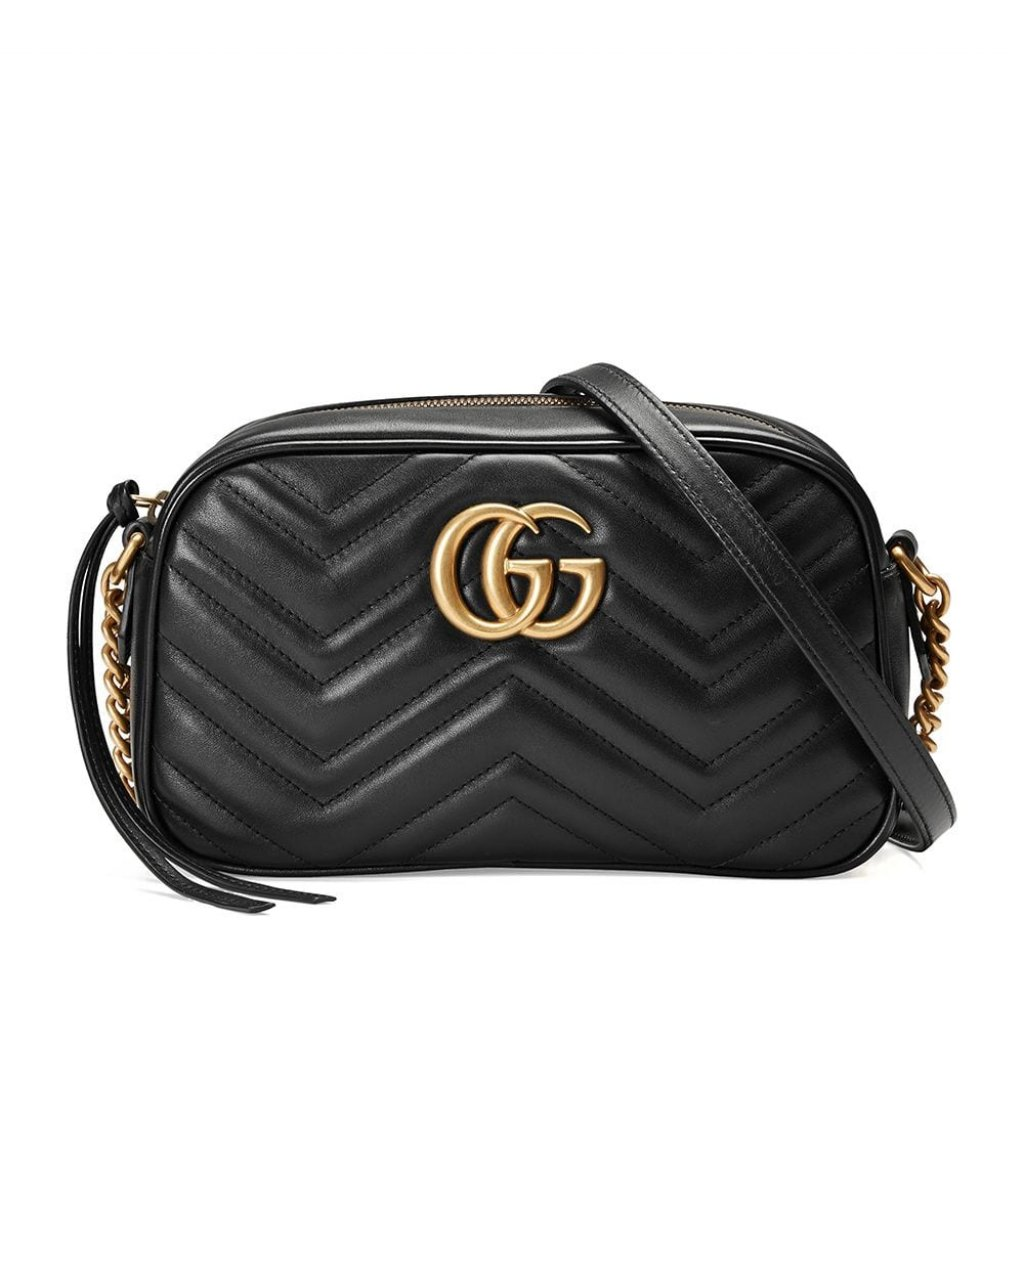 Gucci Small GG Marmont 2.0 Matelassé Leather Camera Bag